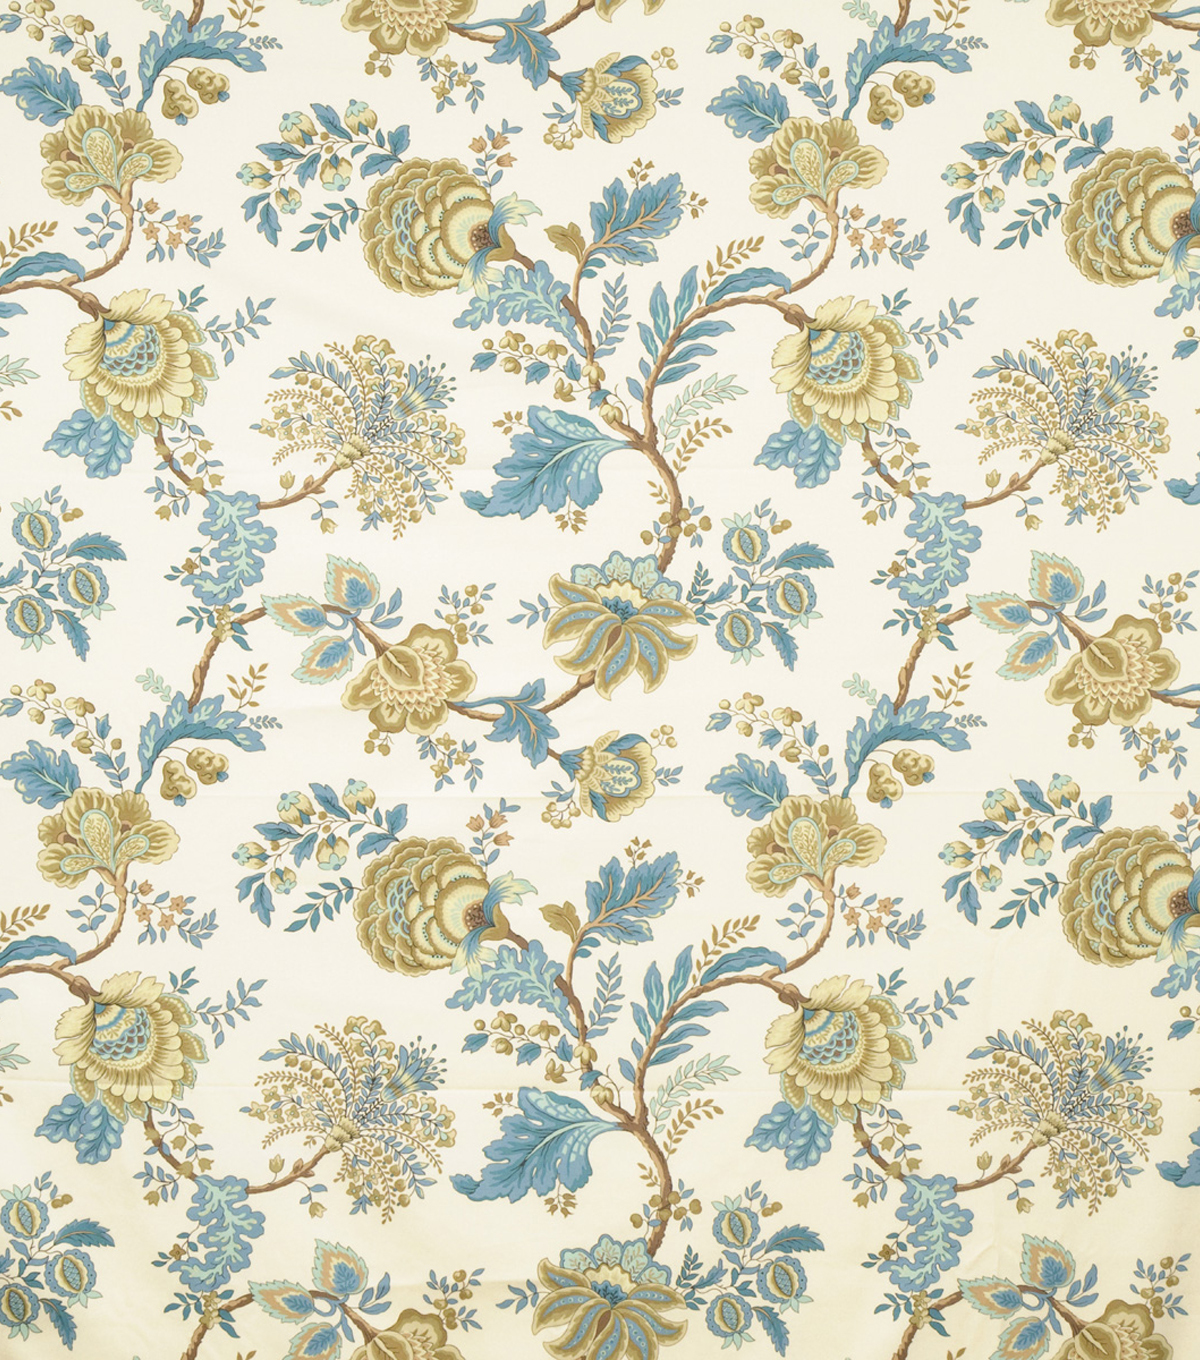 Home Decor 8\u0022x8\u0022 Fabric Swatch-Jaclyn Smith Colbert-Peacock